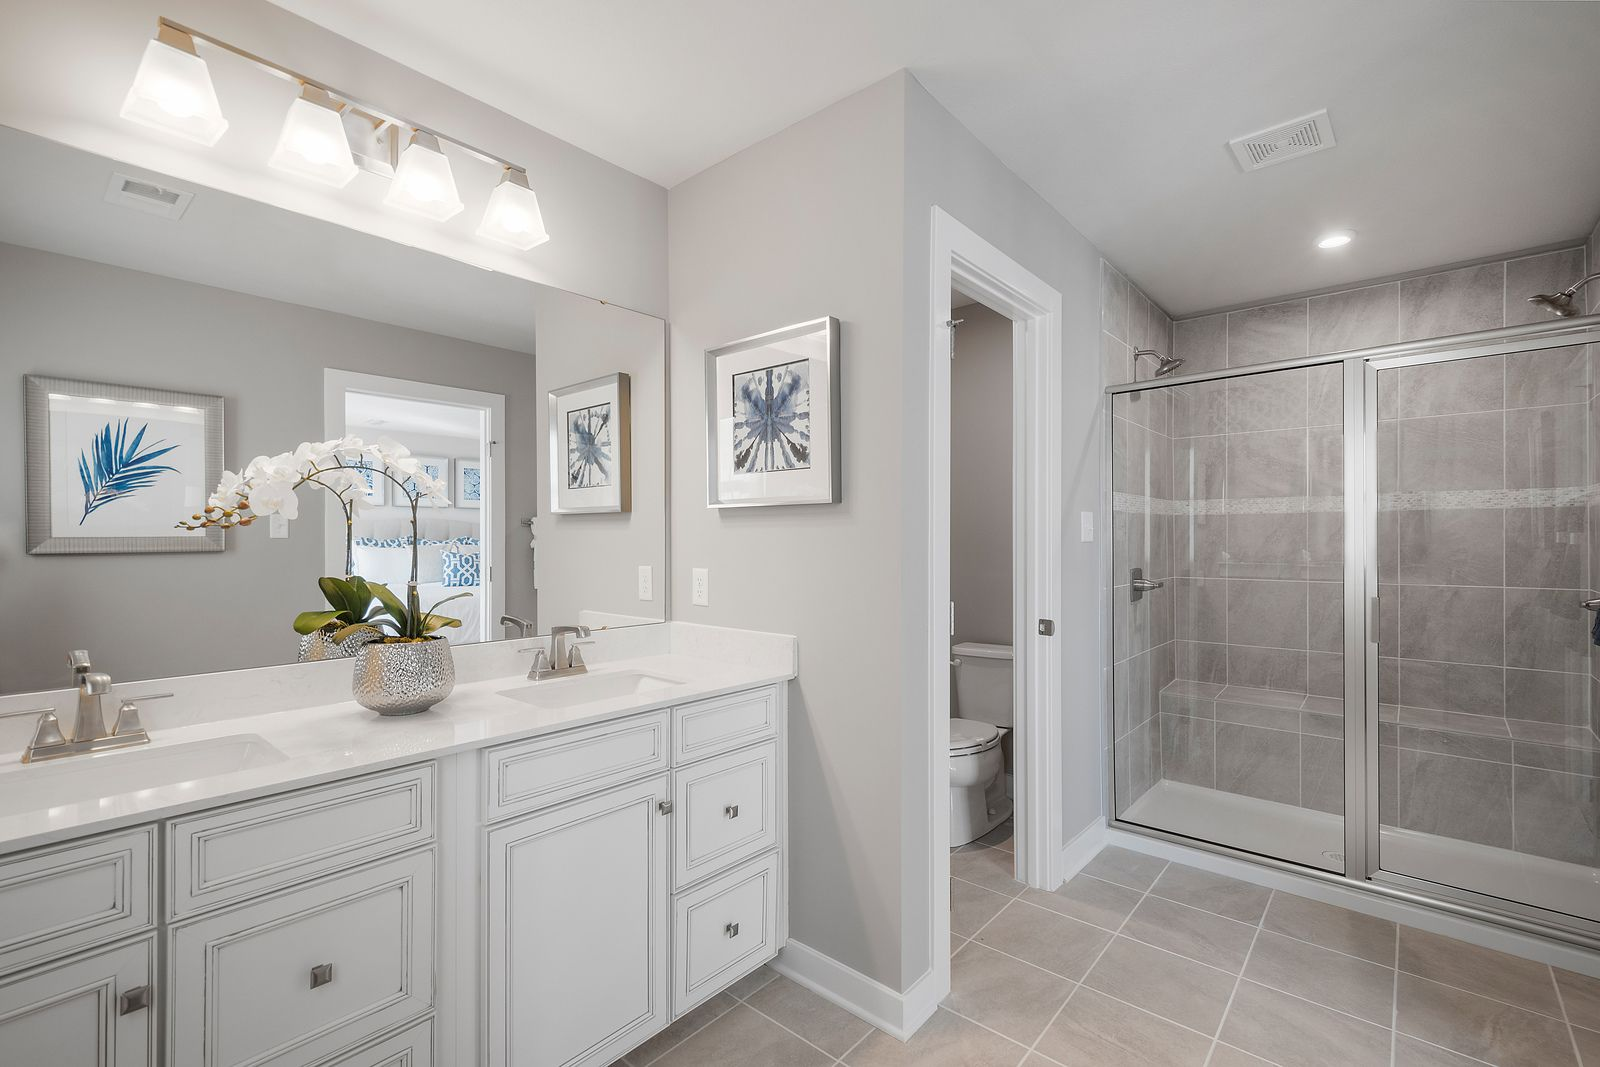 Bathroom featured in the Columbia By Ryan Homes in York, PA